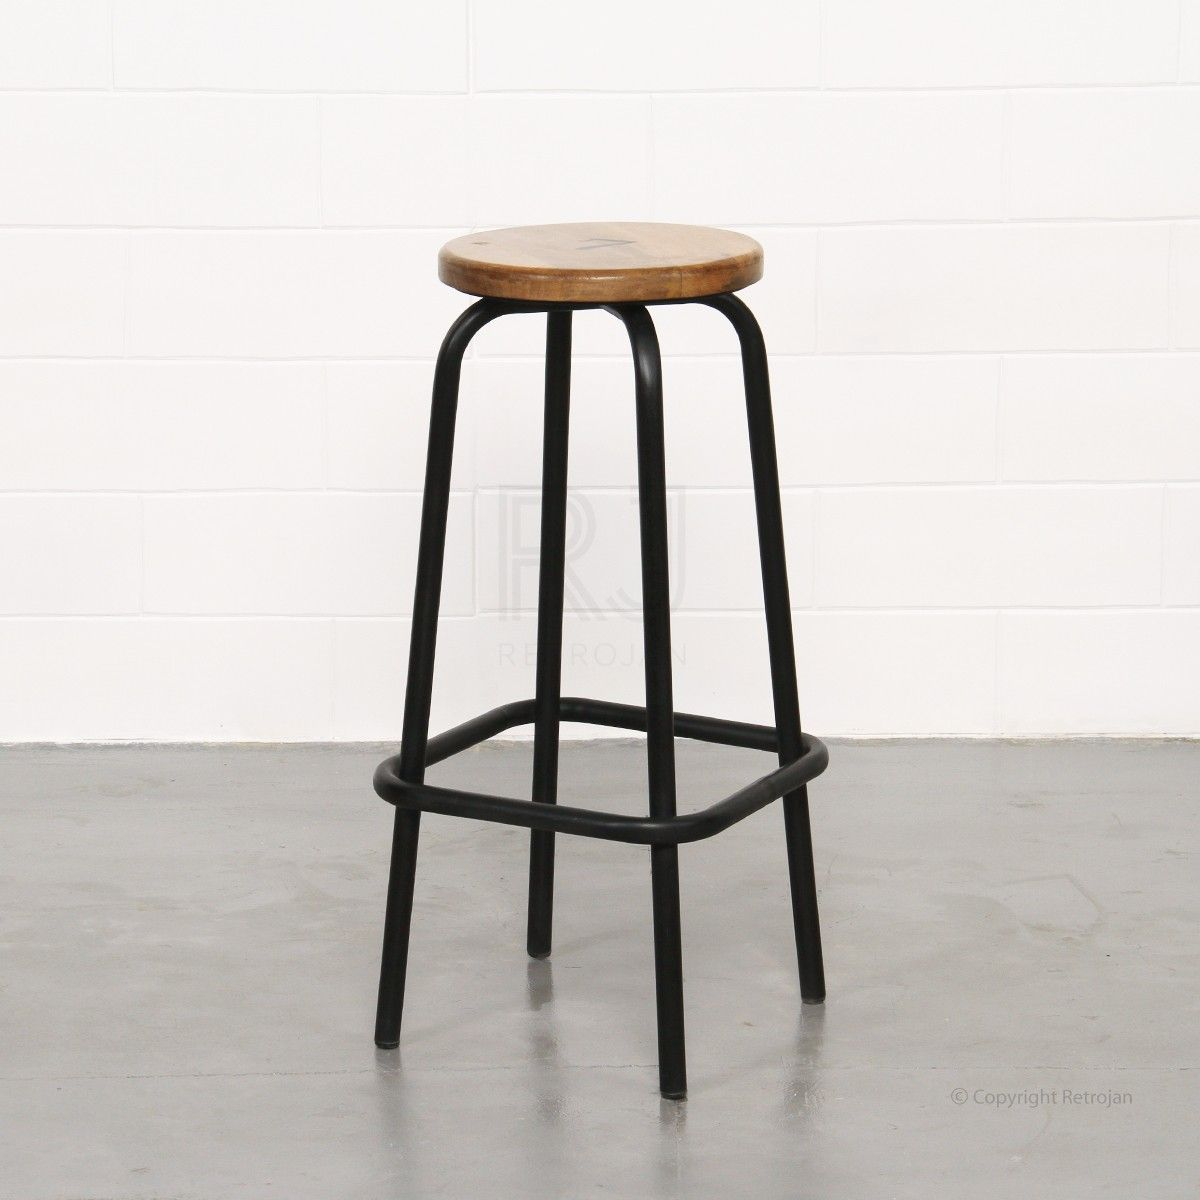 Surprising Clifford Industrial Stool Black Consept Stool Stool Gmtry Best Dining Table And Chair Ideas Images Gmtryco